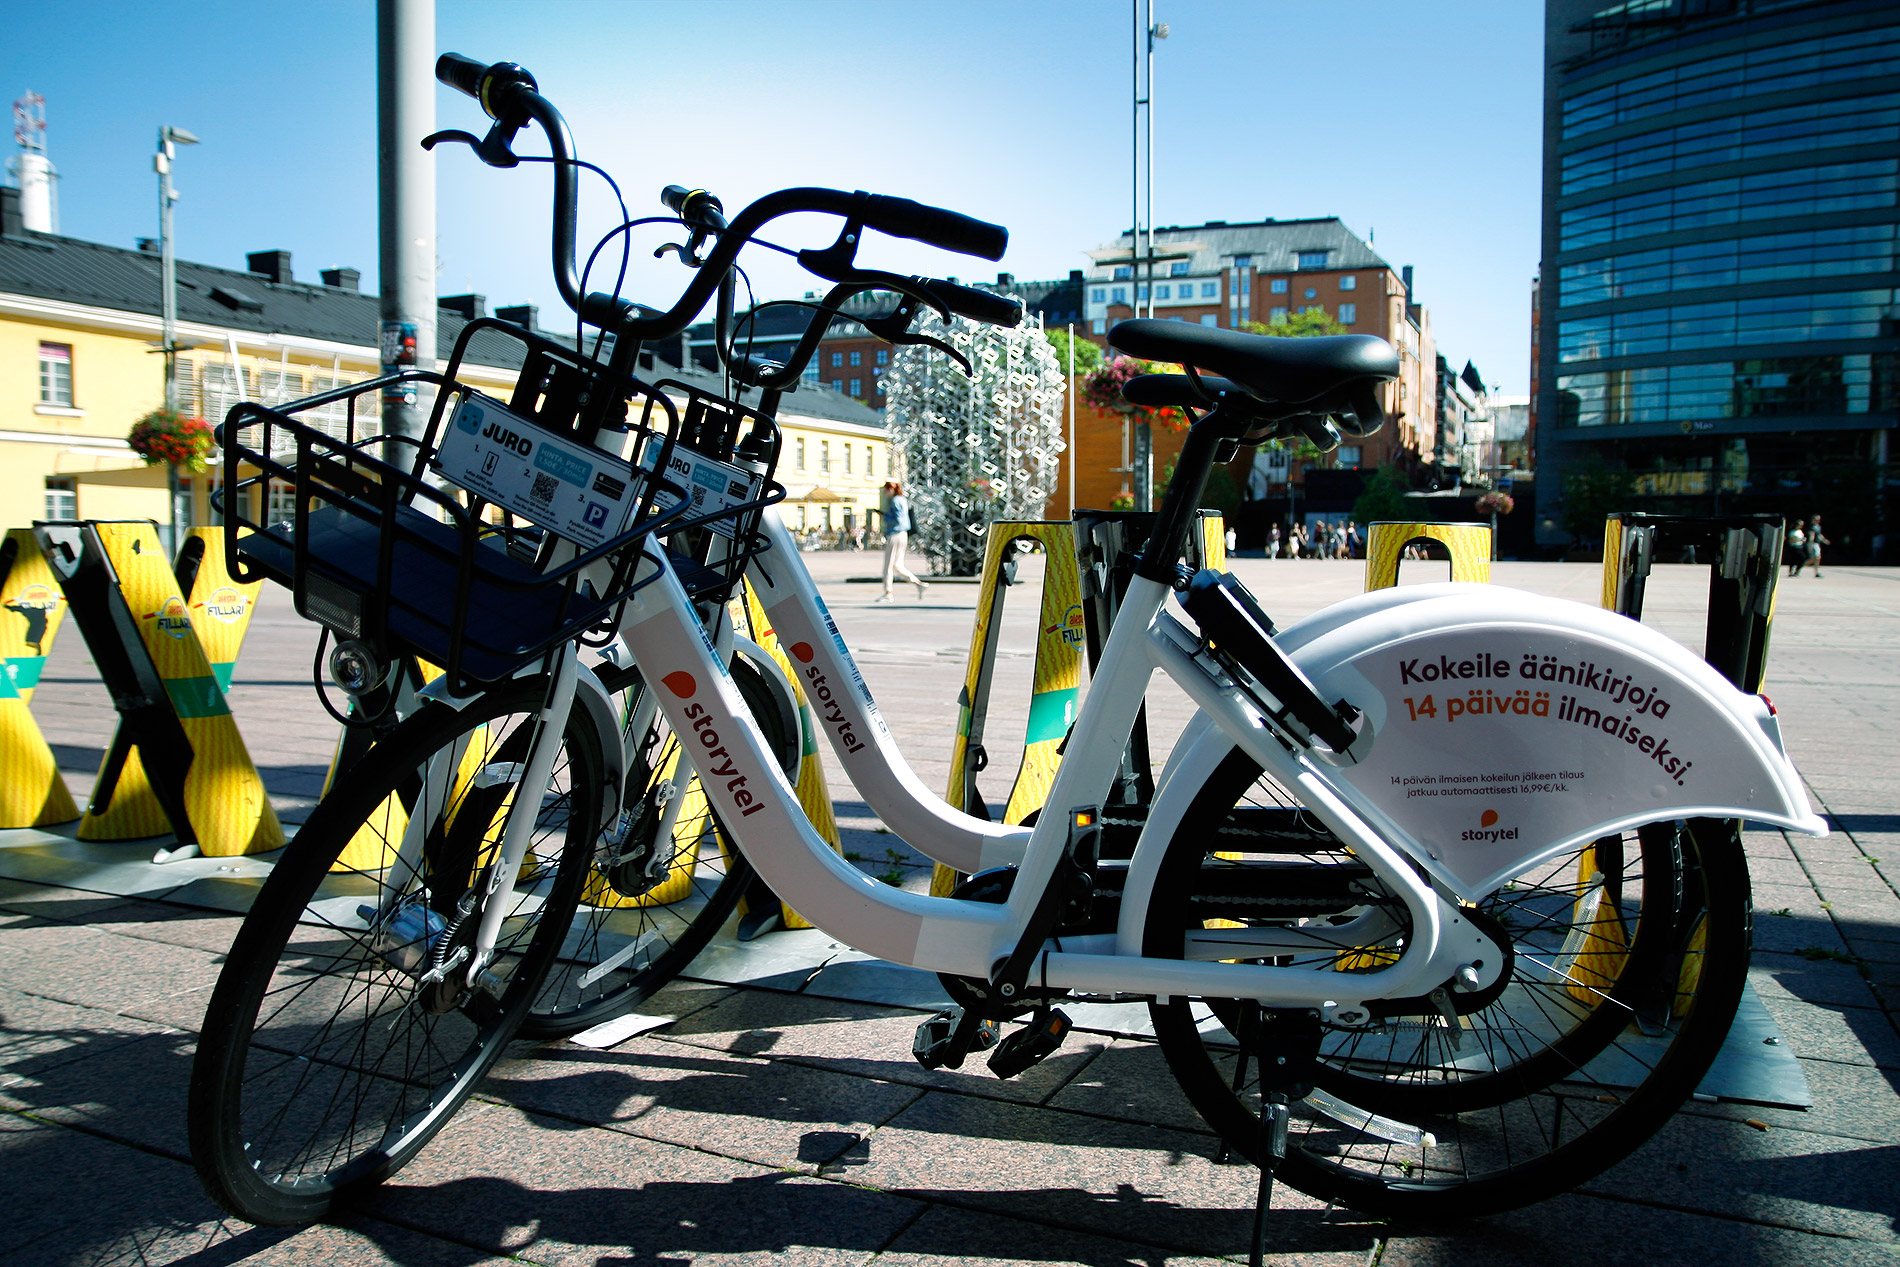 Juro city bikes standing next to a designated station of the yellow Helsinki city bikes in Kamppi district on July 27, 2020. Photograph: Tony Öhberg/Finland Today